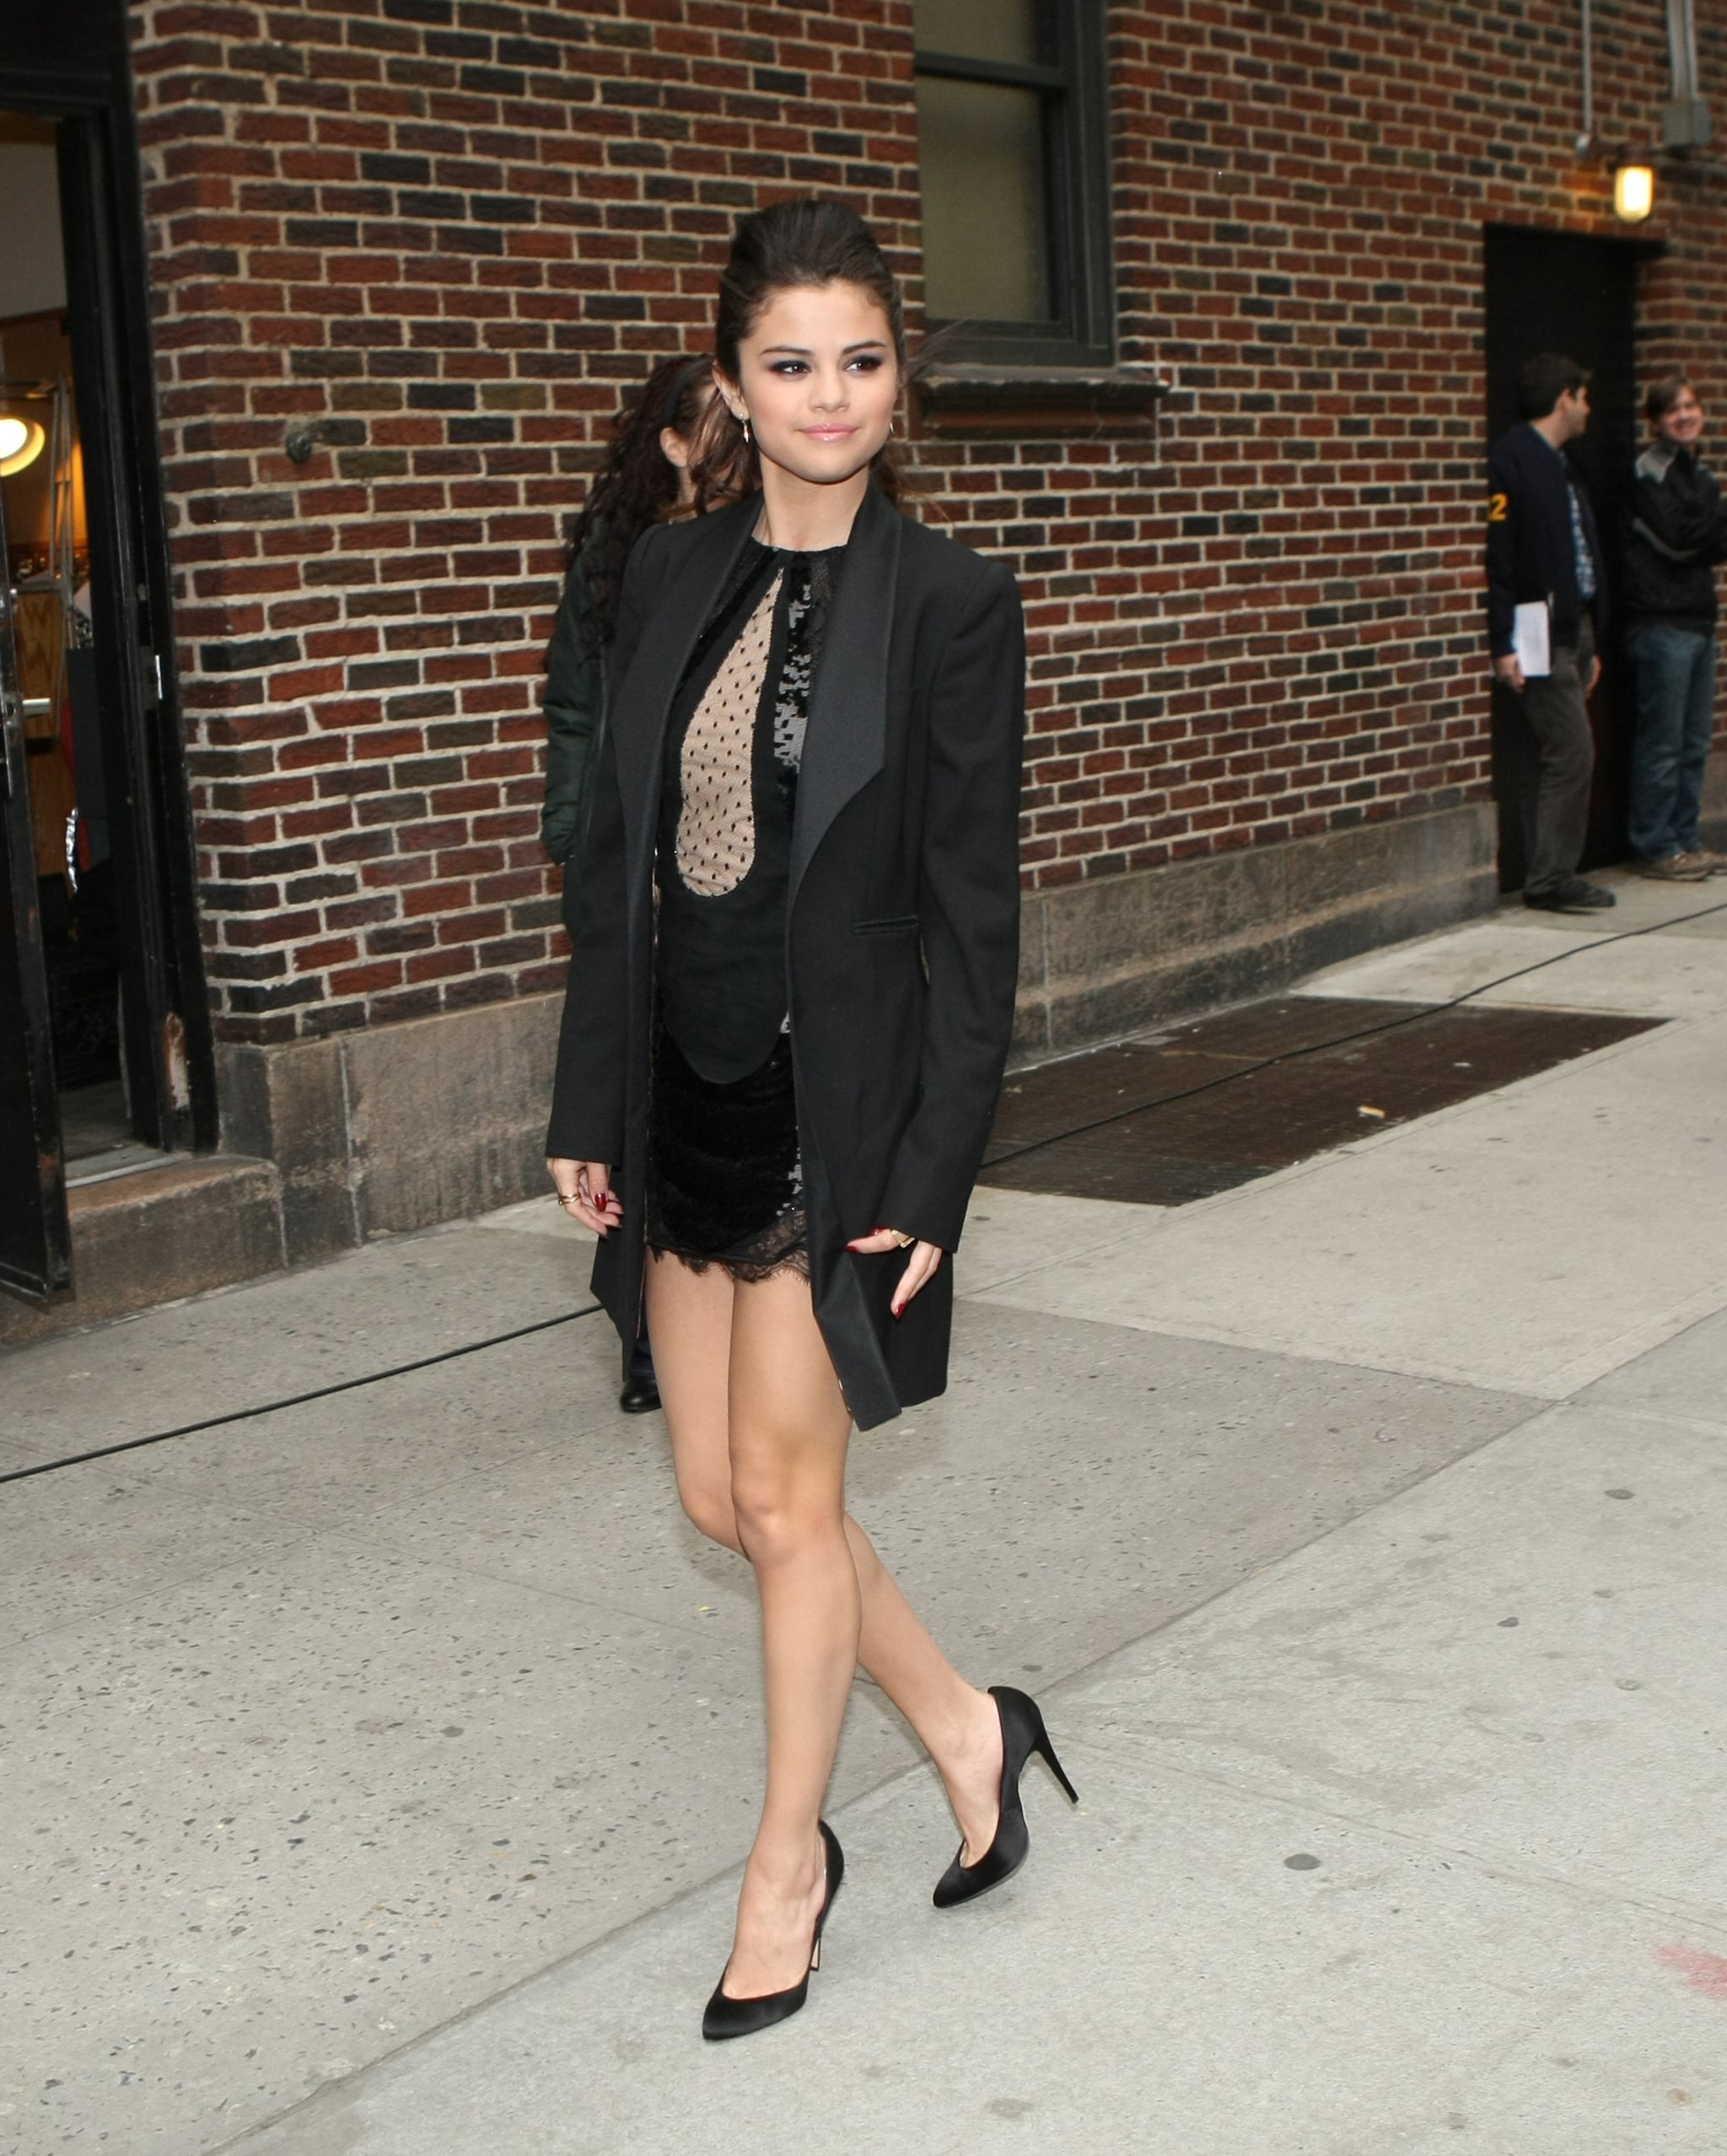 Selena Gomez stopped by David Letterman's studios in NYC in a little black Emilio Pucci dress with polka dots, sequins, and lace. She completed her sexy look with a long tuxedo blazer by Dolce & Gabbana, black satin Brian Atwood pumps, and Melinda Maria jewels.